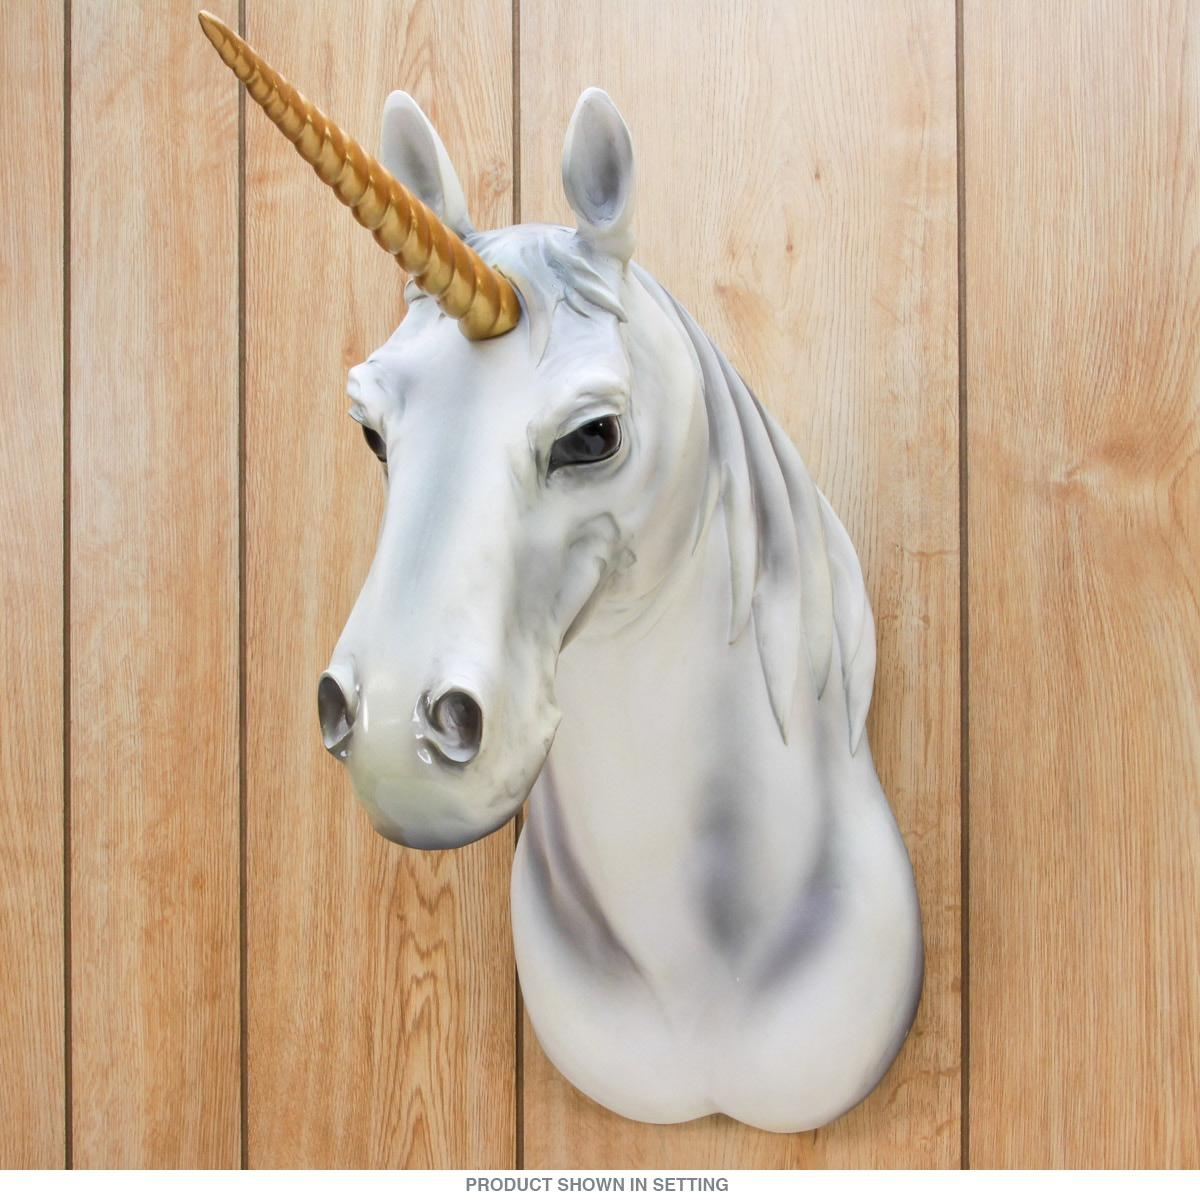 Unicorn Attack Plaque Resin Animal Head | Novelty Home Accents With Regard To Resin Animal Heads Wall Art (View 16 of 20)